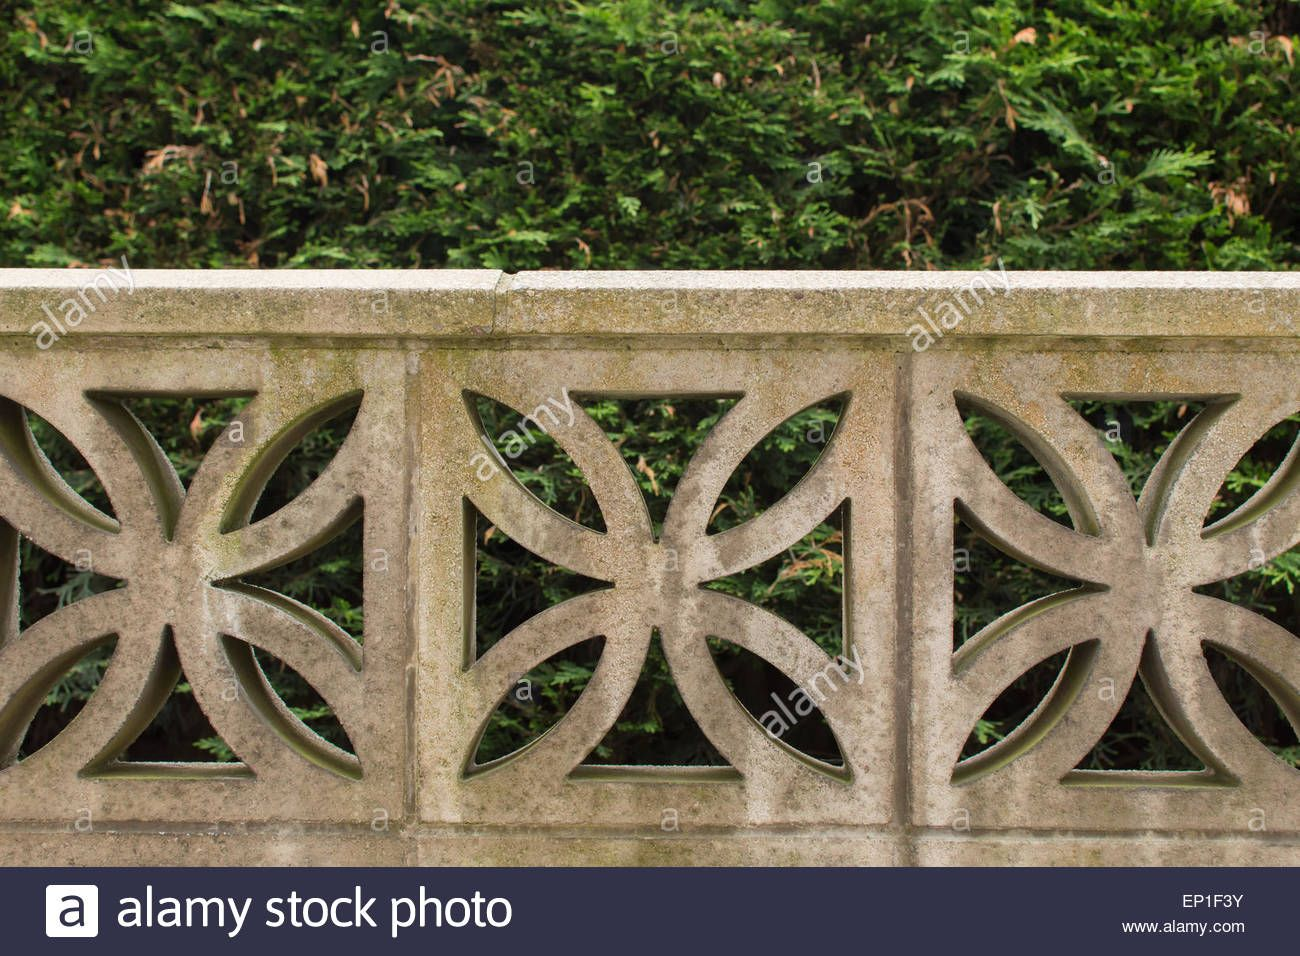 Garden Wall Built From Decorative Concrete Blocks Stock Photo Decorative Concrete Blocks Garden Wall Designs Concrete Garden